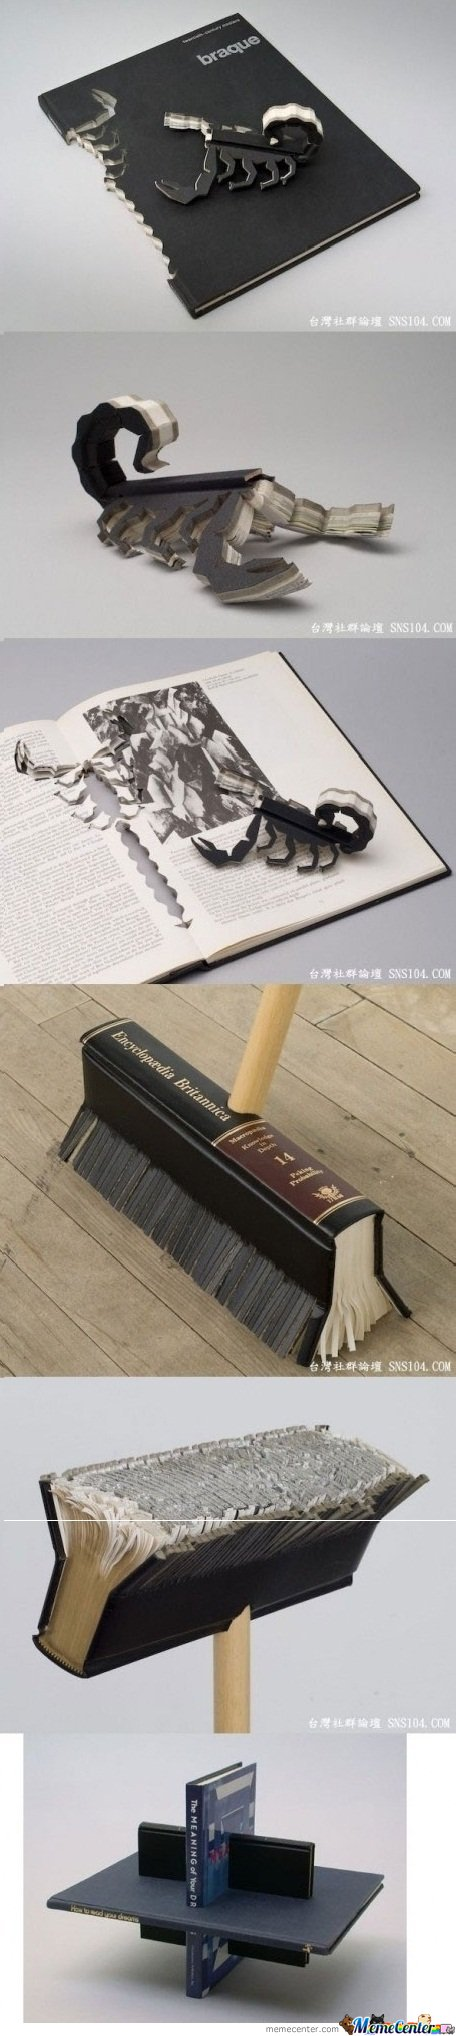 Making Proper Use Of Books